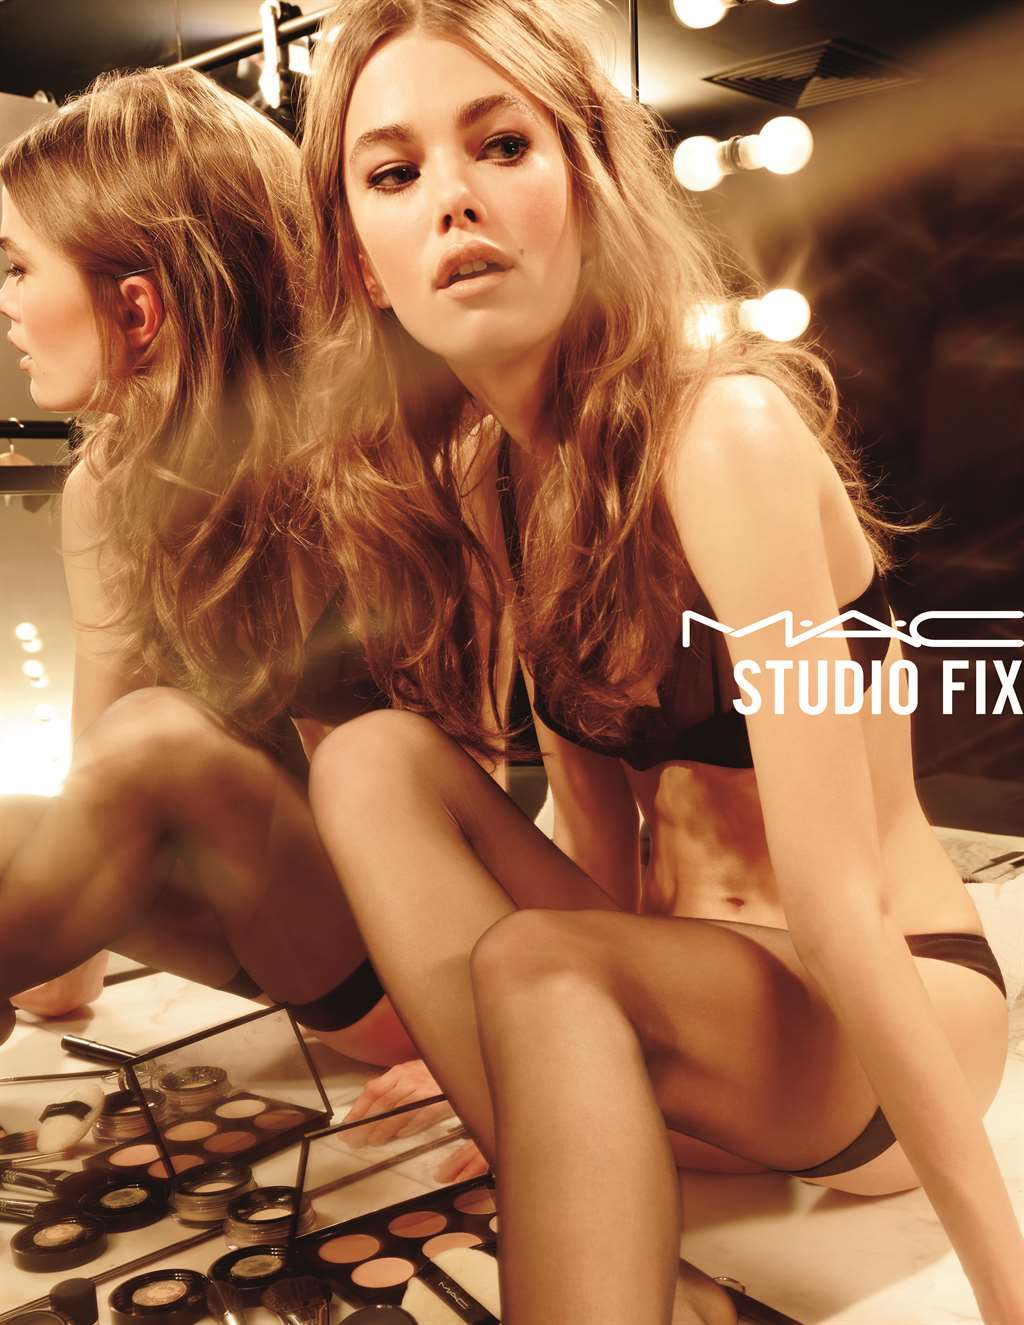 STUDIO FIX_BEAUTY_300_CMYK